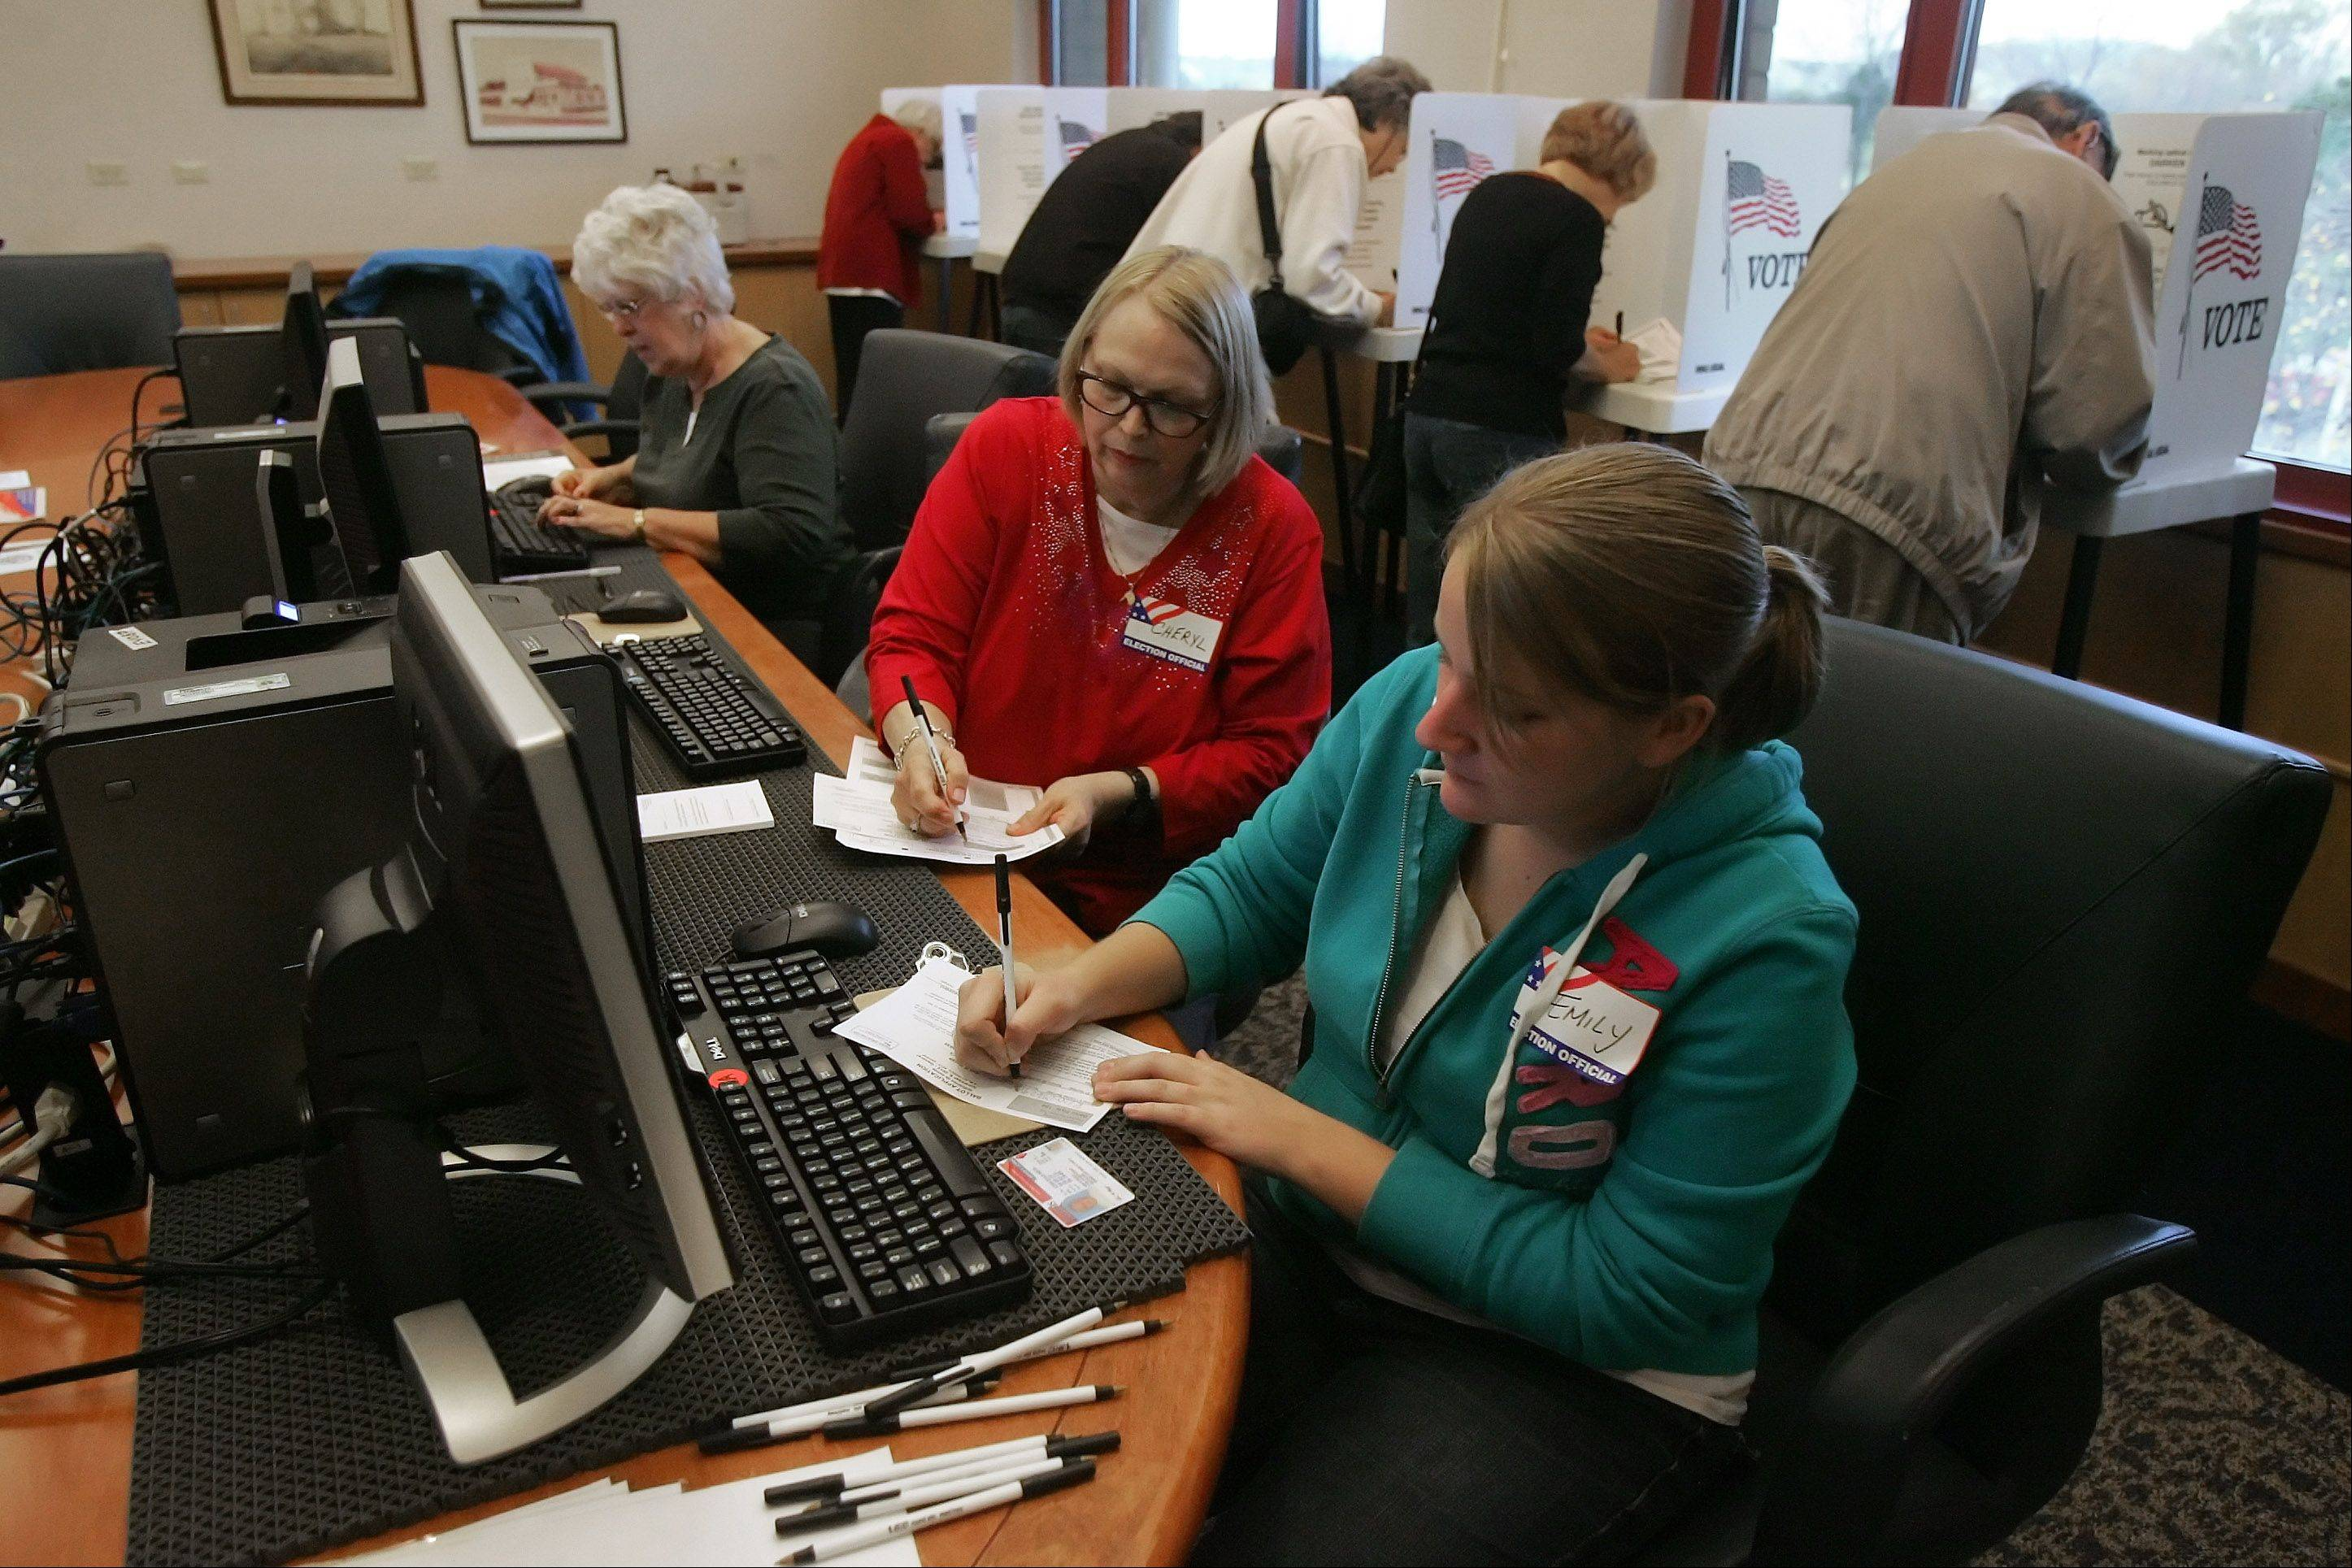 Election judges Emily Dewitt, front, Cheryl Bradford and Lois Caslavka are busy helping voters get their ballots on the first day of early voting Oct. 22 at Fremont Public Library in Mundelein. There was a long line of people waiting to vote.